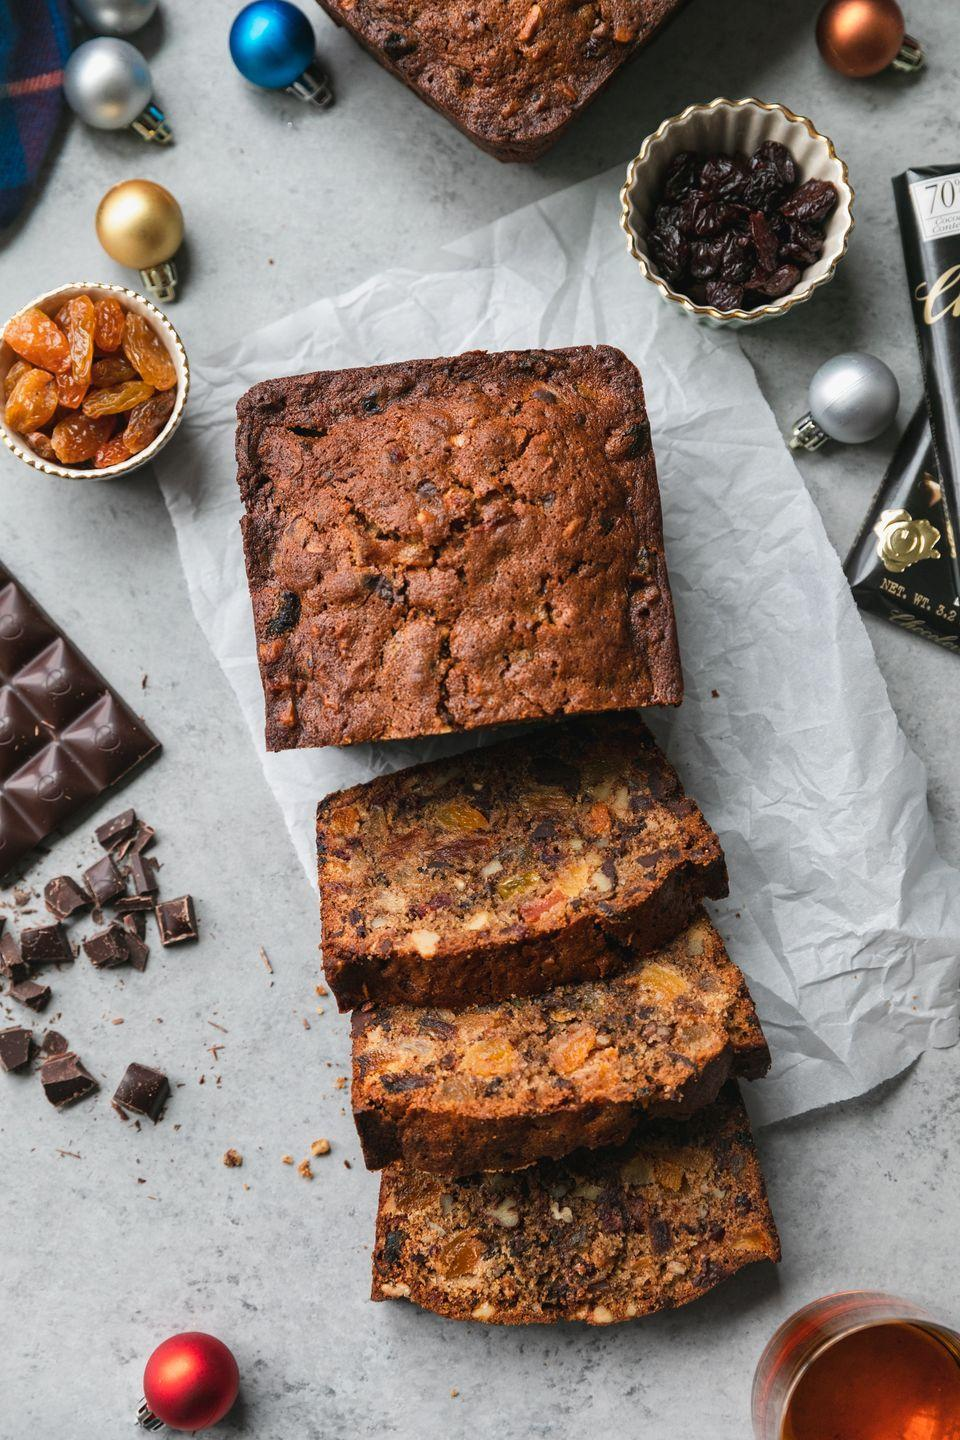 "<p>The addition of rich dark chocolate makes this fruitcake impossible to resist. The entire loaf will be polished off in no time.</p><p><strong>Get the recipe at <a href=""https://www.spicesinmydna.com/dark-chocolate-fruitcake/"" rel=""nofollow noopener"" target=""_blank"" data-ylk=""slk:Spices in My DNA"" class=""link rapid-noclick-resp"">Spices in My DNA</a>.</strong></p><p><strong><a class=""link rapid-noclick-resp"" href=""https://go.redirectingat.com?id=74968X1596630&url=https%3A%2F%2Fwww.walmart.com%2Fip%2FWilton-Bake-It-Better-Non-Stick-Large-Loaf-Pan%2F45848368&sref=https%3A%2F%2Fwww.countryliving.com%2Ffood-drinks%2Fg3610%2Fchristmas-fruitcake-recipes%2F"" rel=""nofollow noopener"" target=""_blank"" data-ylk=""slk:SHOP LOAF PANS"">SHOP LOAF PANS</a><br></strong></p>"